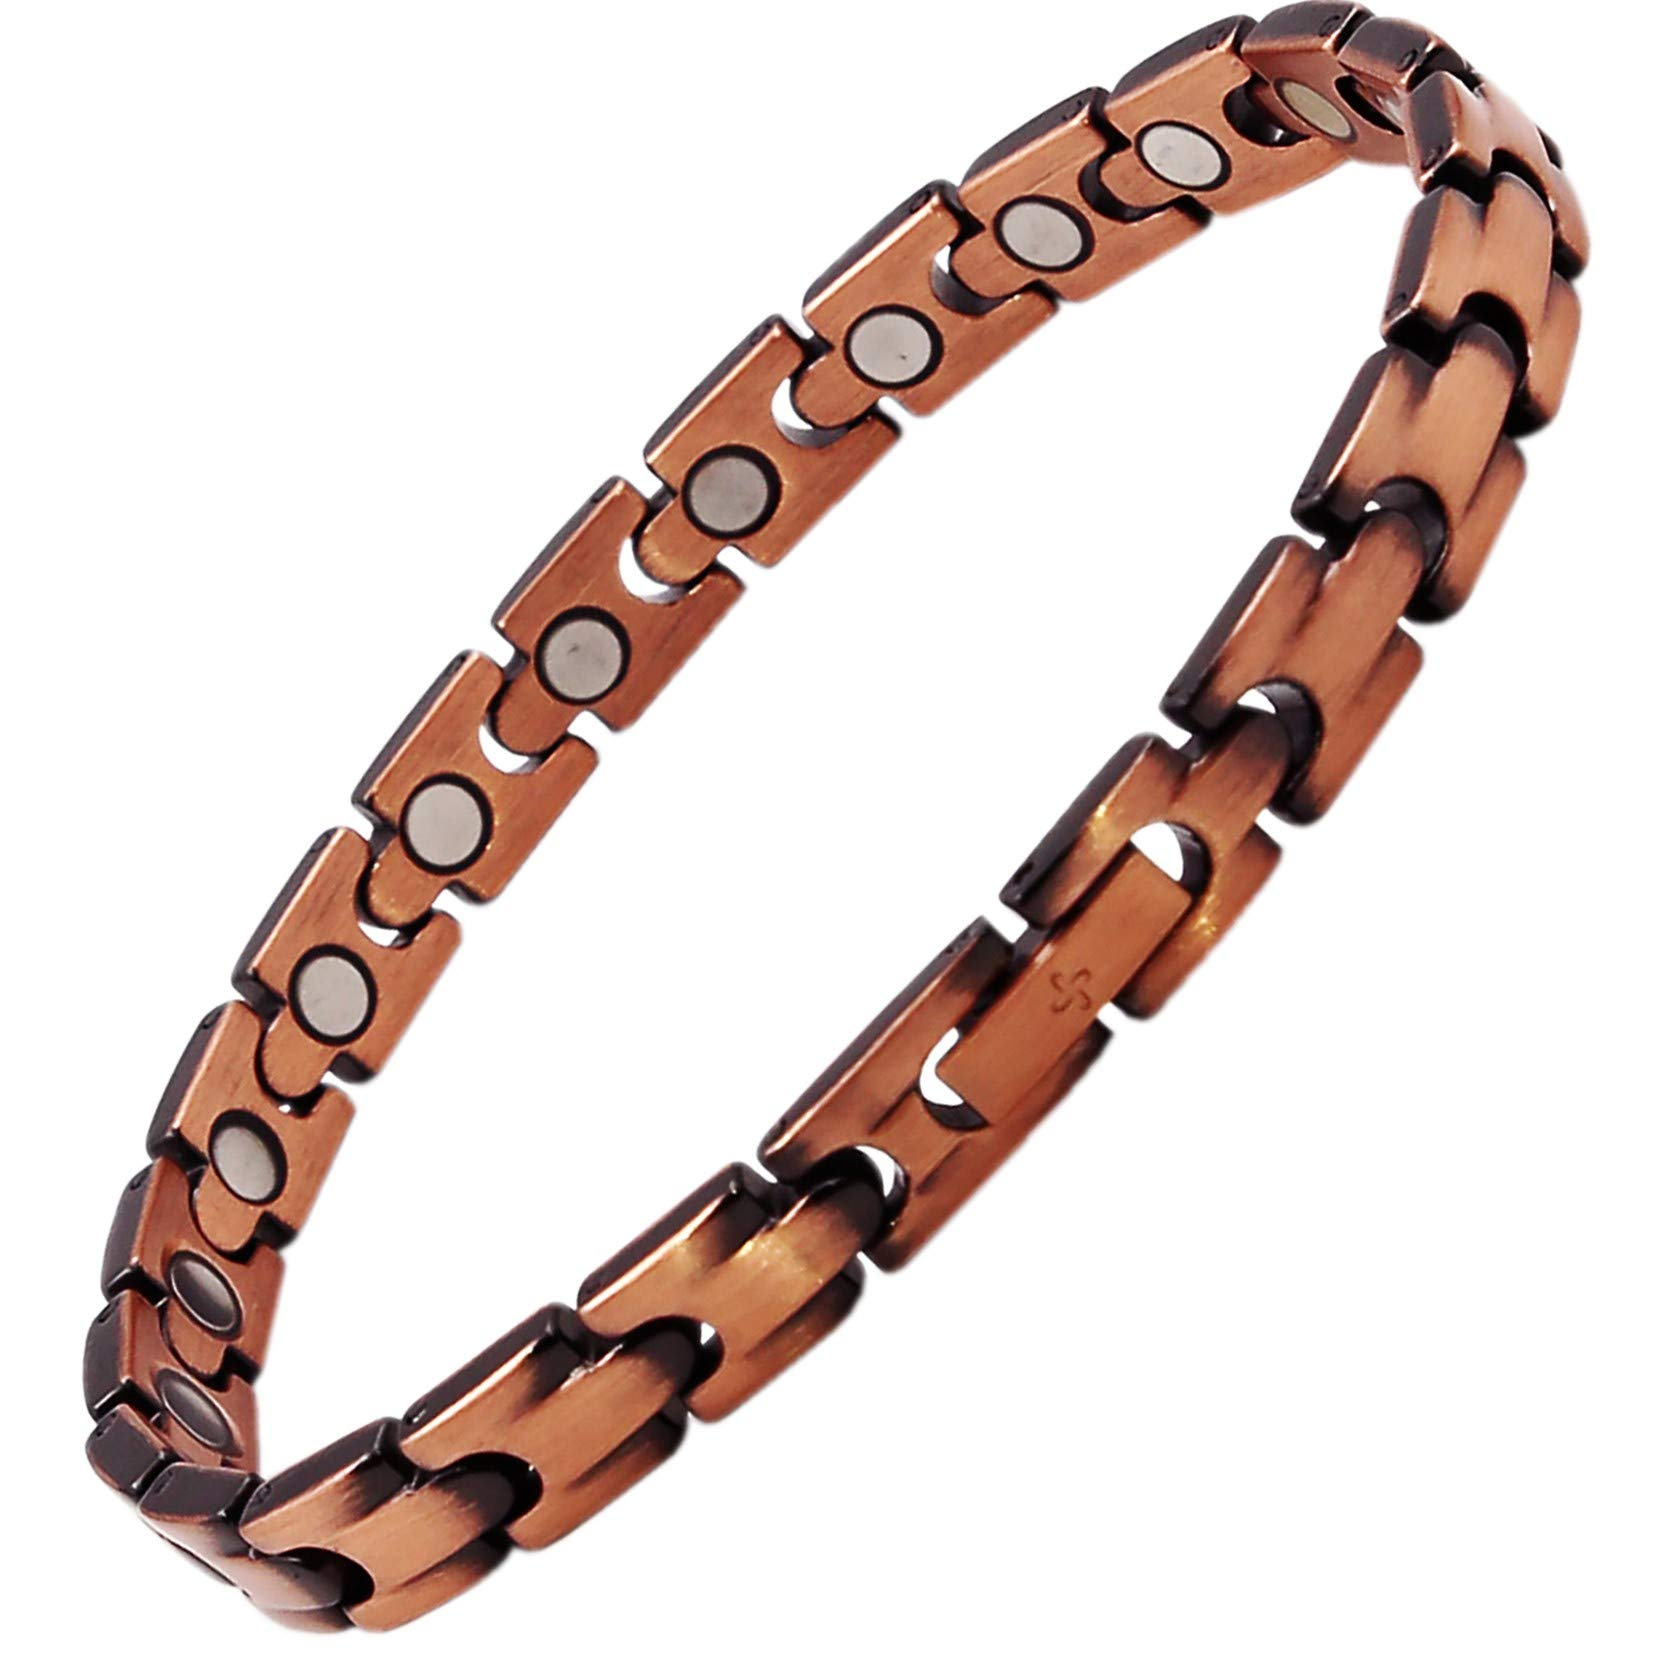 Reevaria Copper Bracelet for Arthritis, 99.9% Pure Copper Magnetic Bracelet for Women, 21 Powerful Magnets, Effective & Natural Relief of Joint Pain, RSI, Carpal Tunnel (20.30 Centimeter) by Reevaria